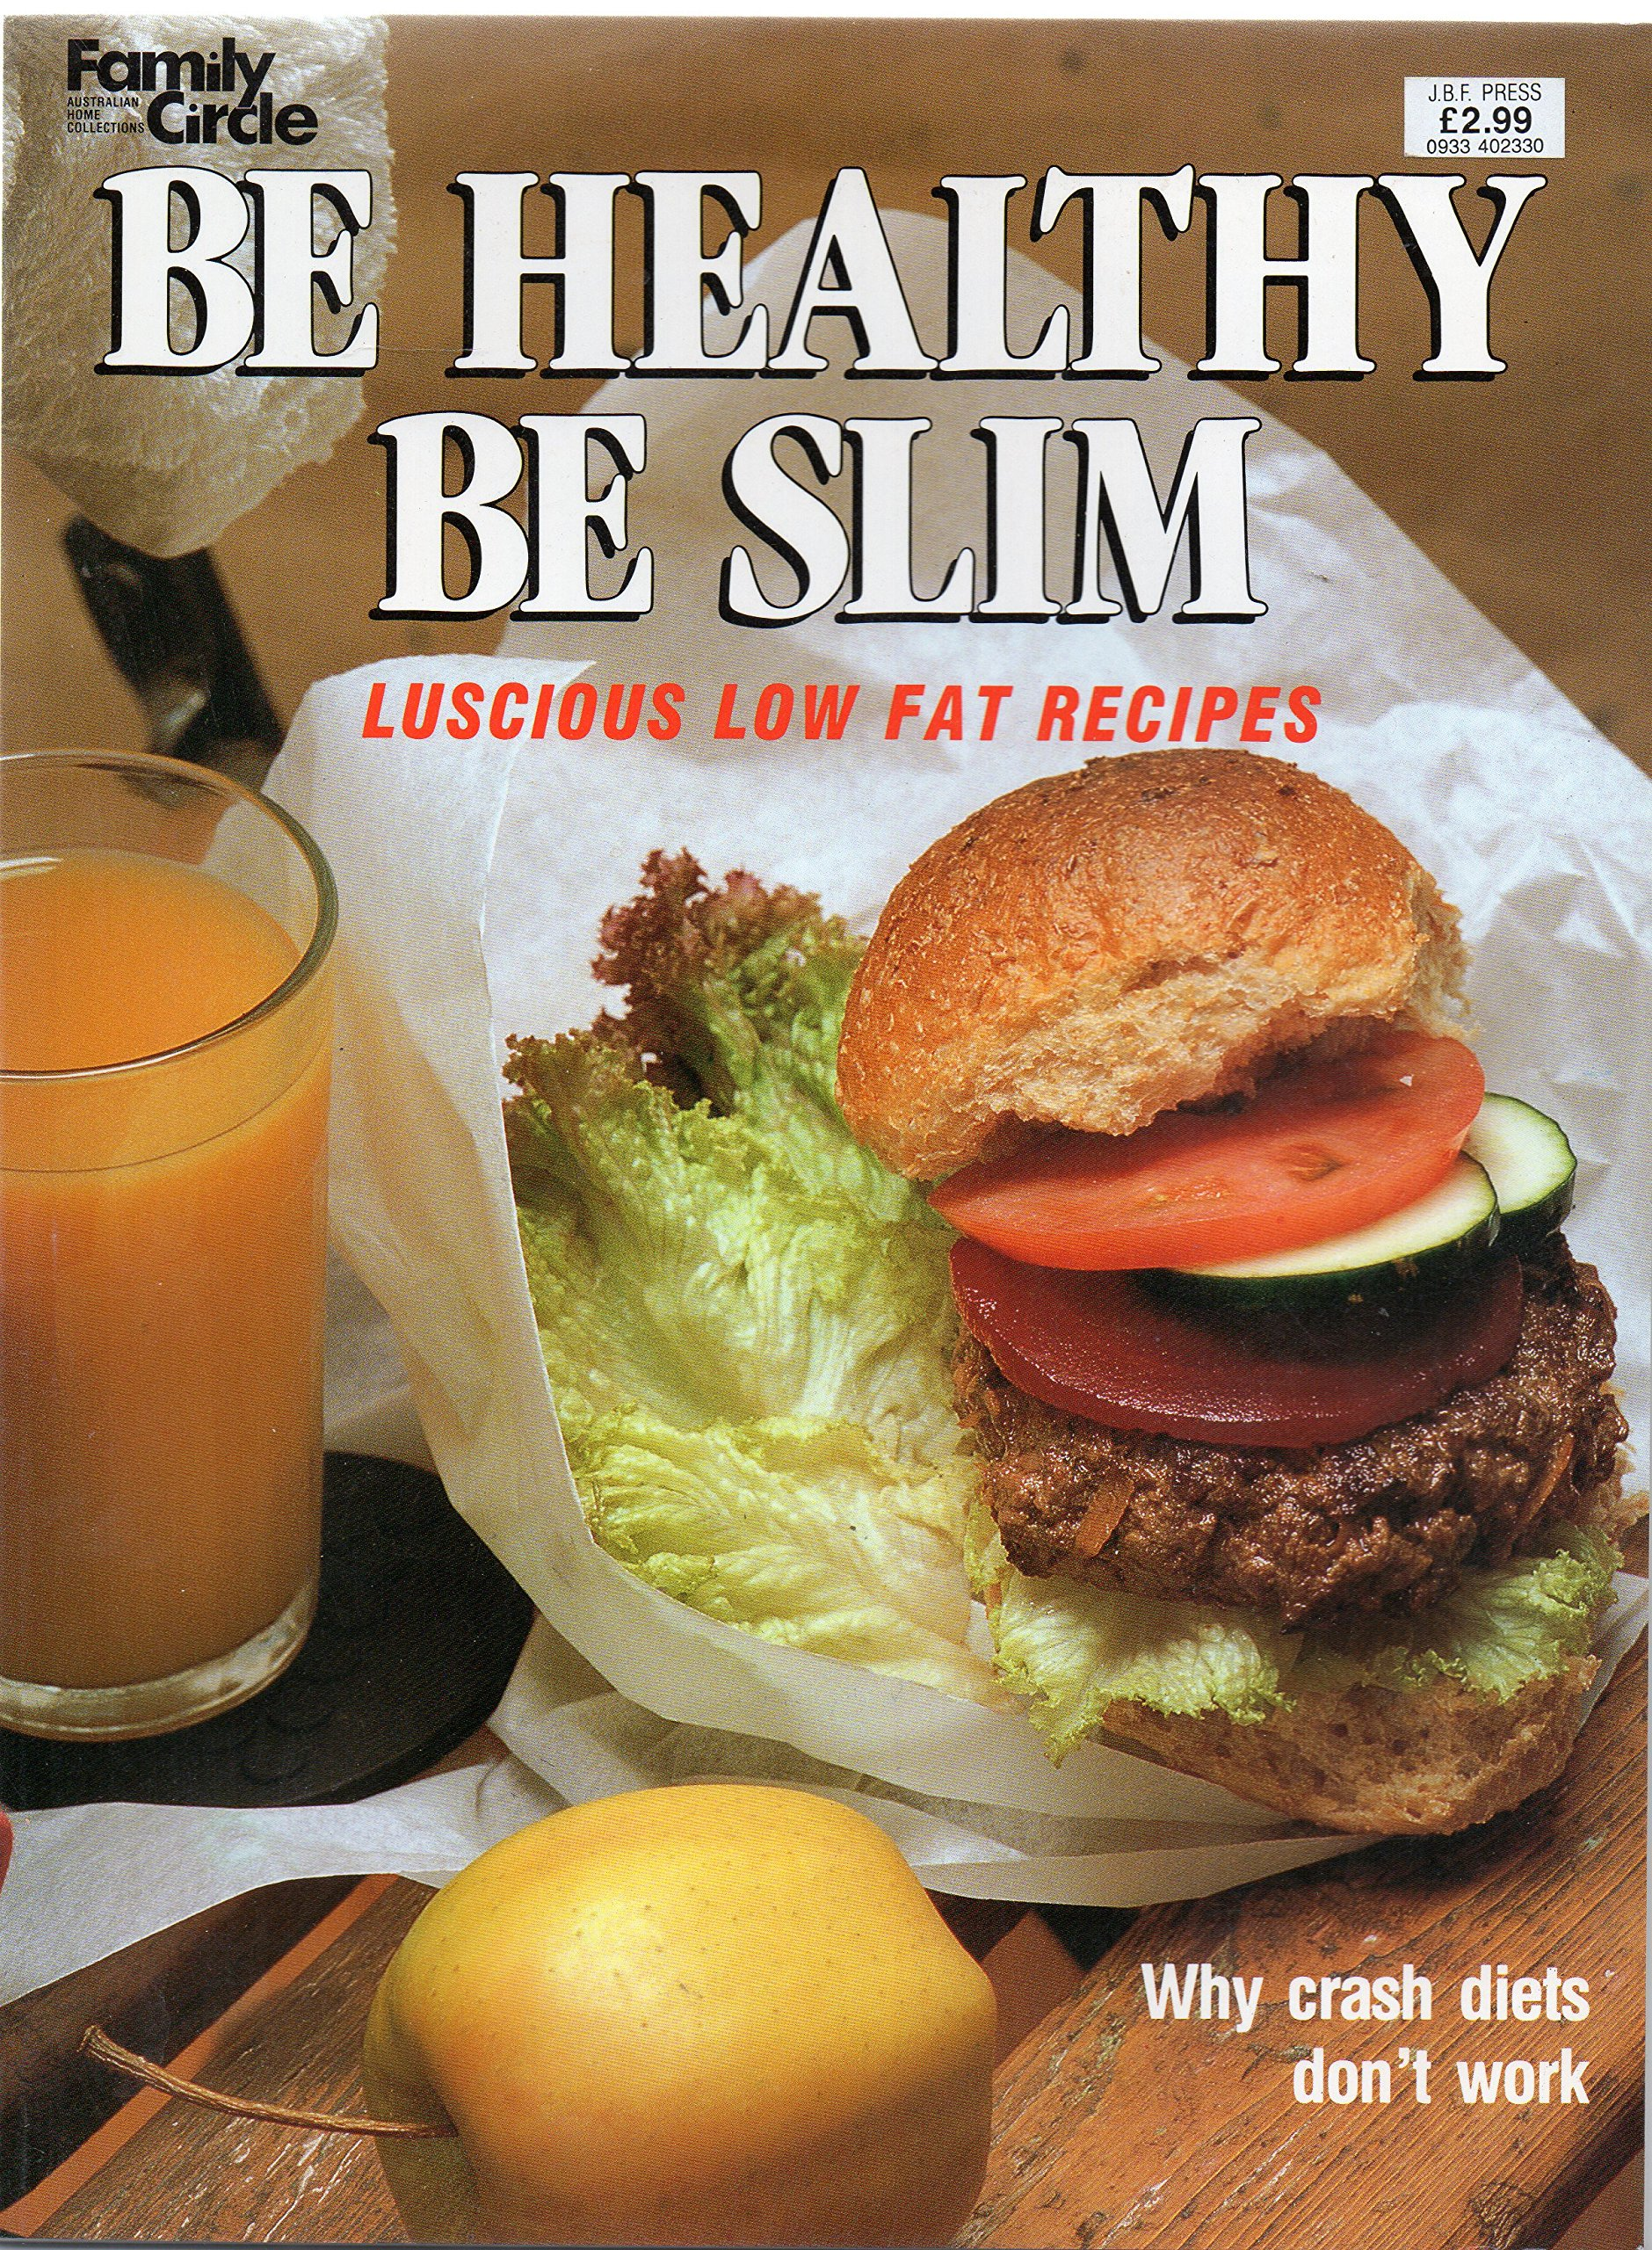 Be Healthy Be Slim (Luscious Low Fat Recipes): Catherine Saxelby (Editor):  9781863430036: Amazon.com: Books